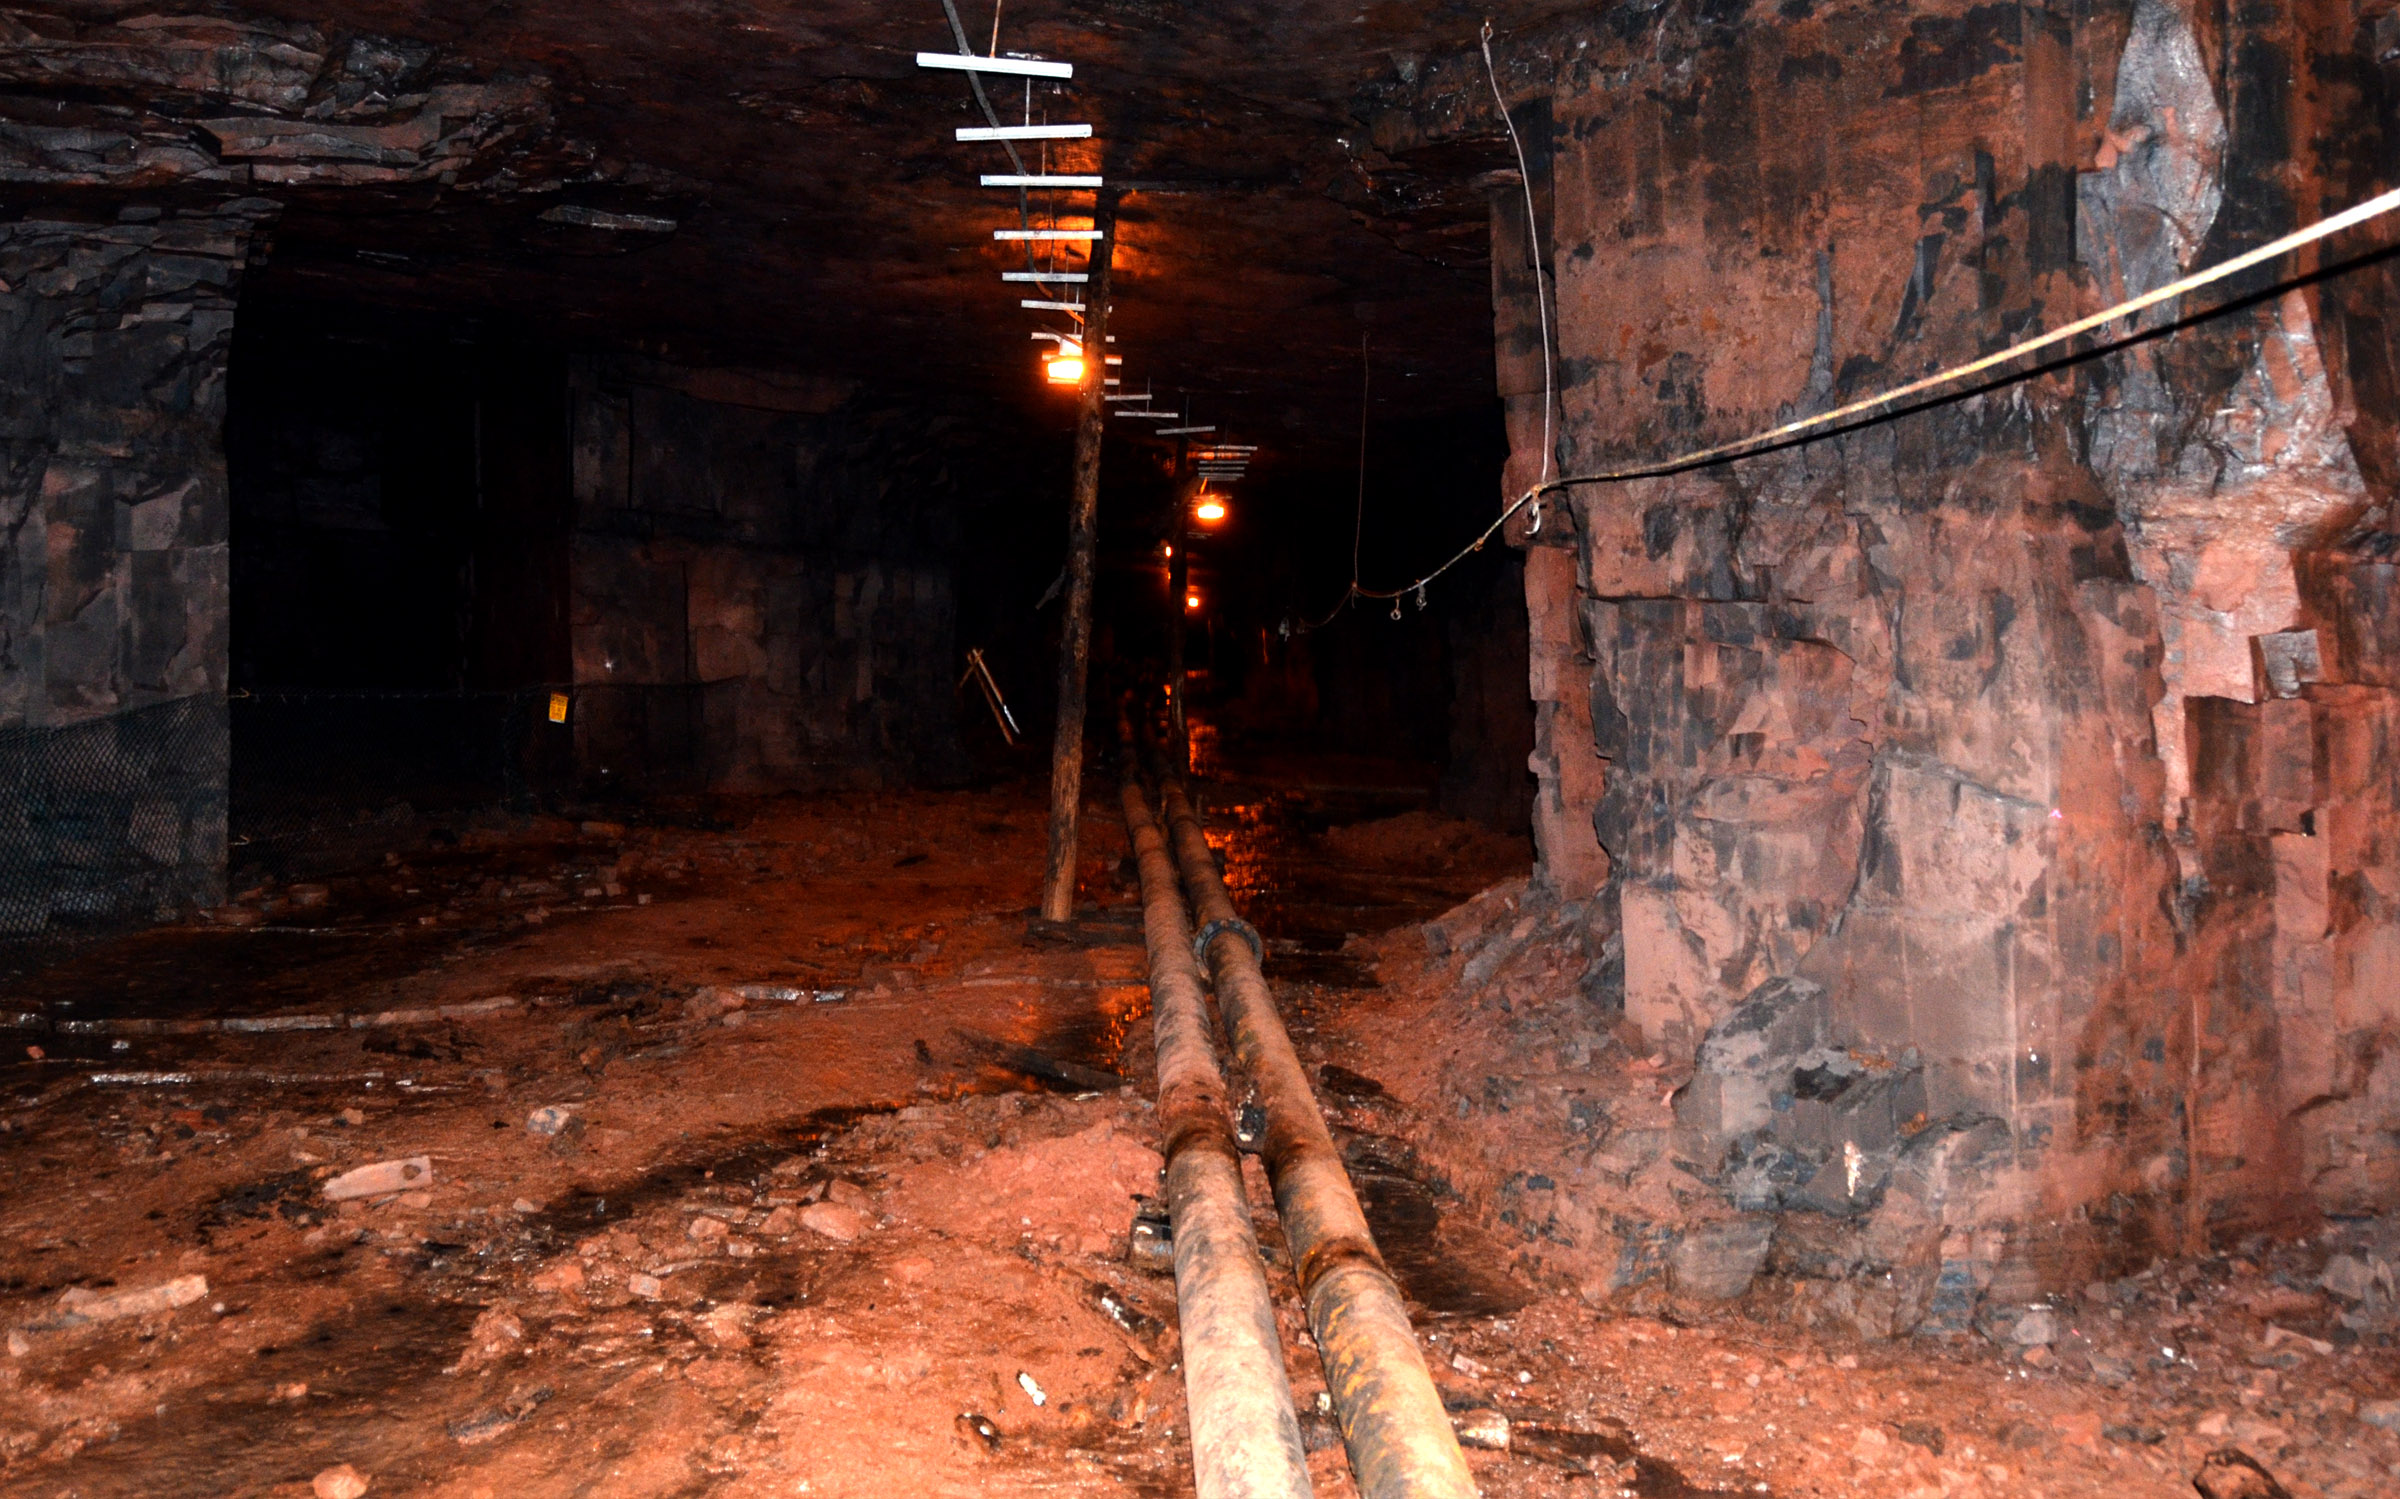 Figure 6: Inside the mine.